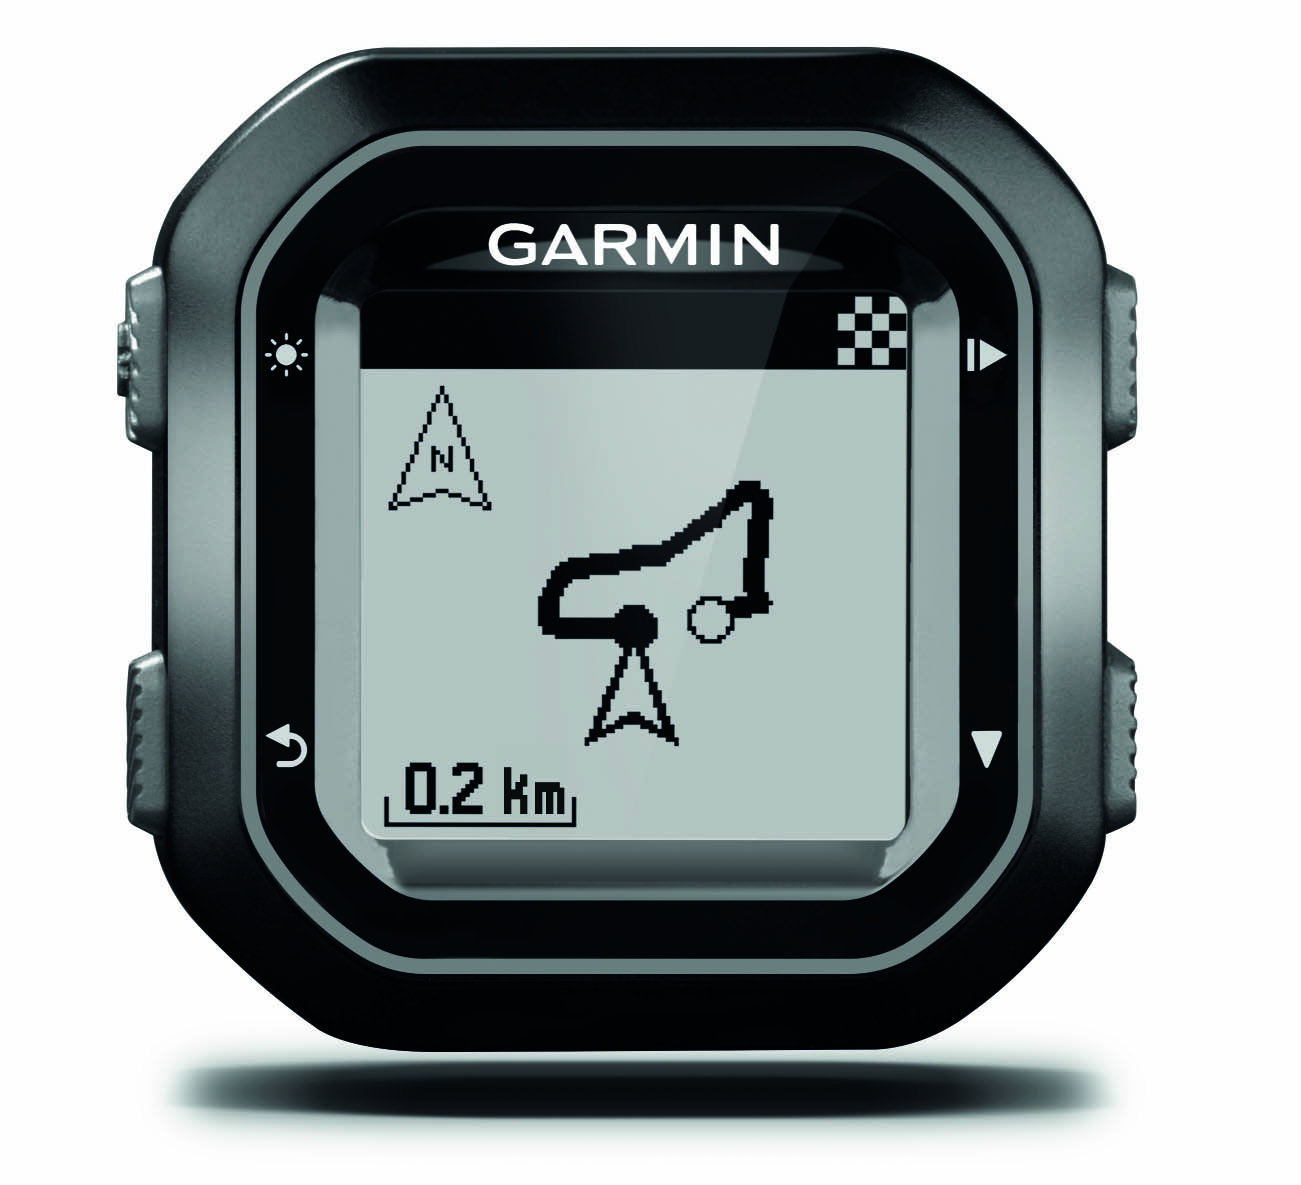 garmin edge 20 und edge 25 mini gps fahrradcomputer vorgestellt gps radler. Black Bedroom Furniture Sets. Home Design Ideas